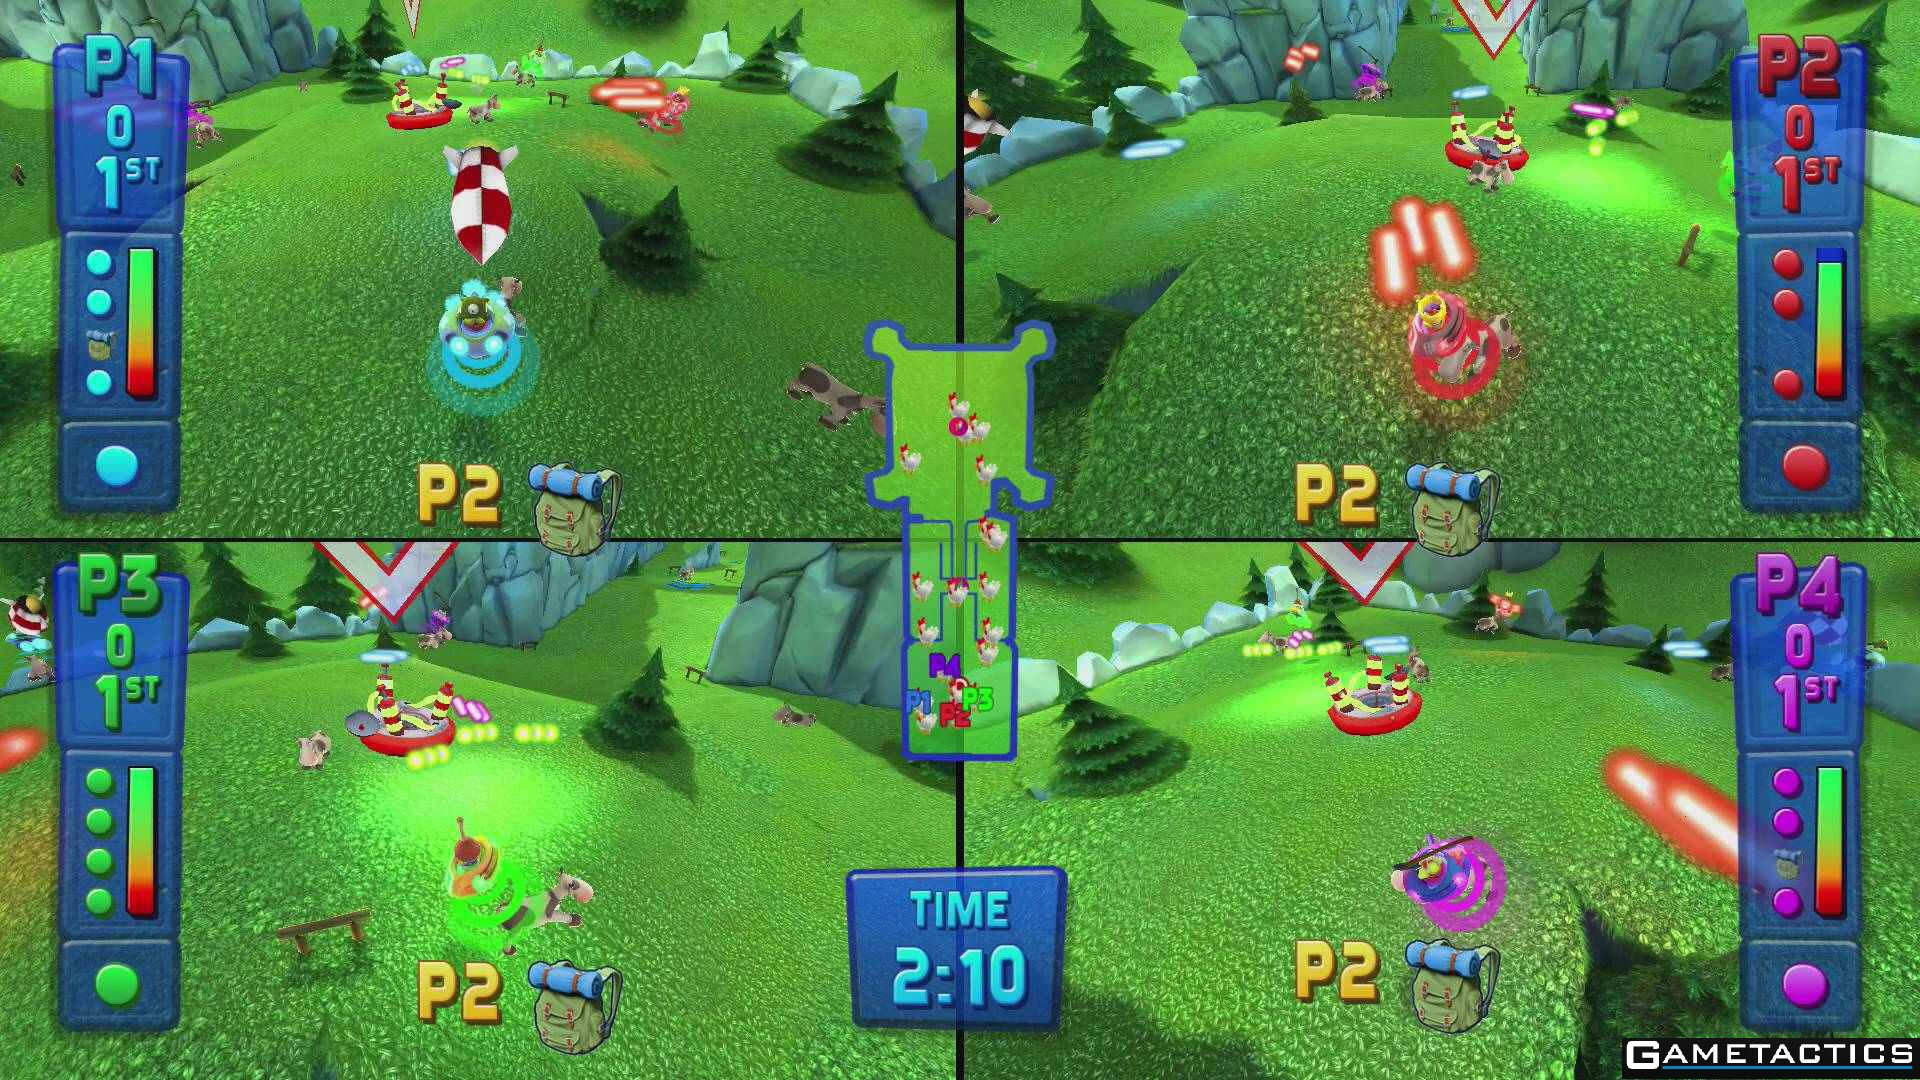 Multiplayer Games For Ps4 : Fluster cluck review playstation gametactics